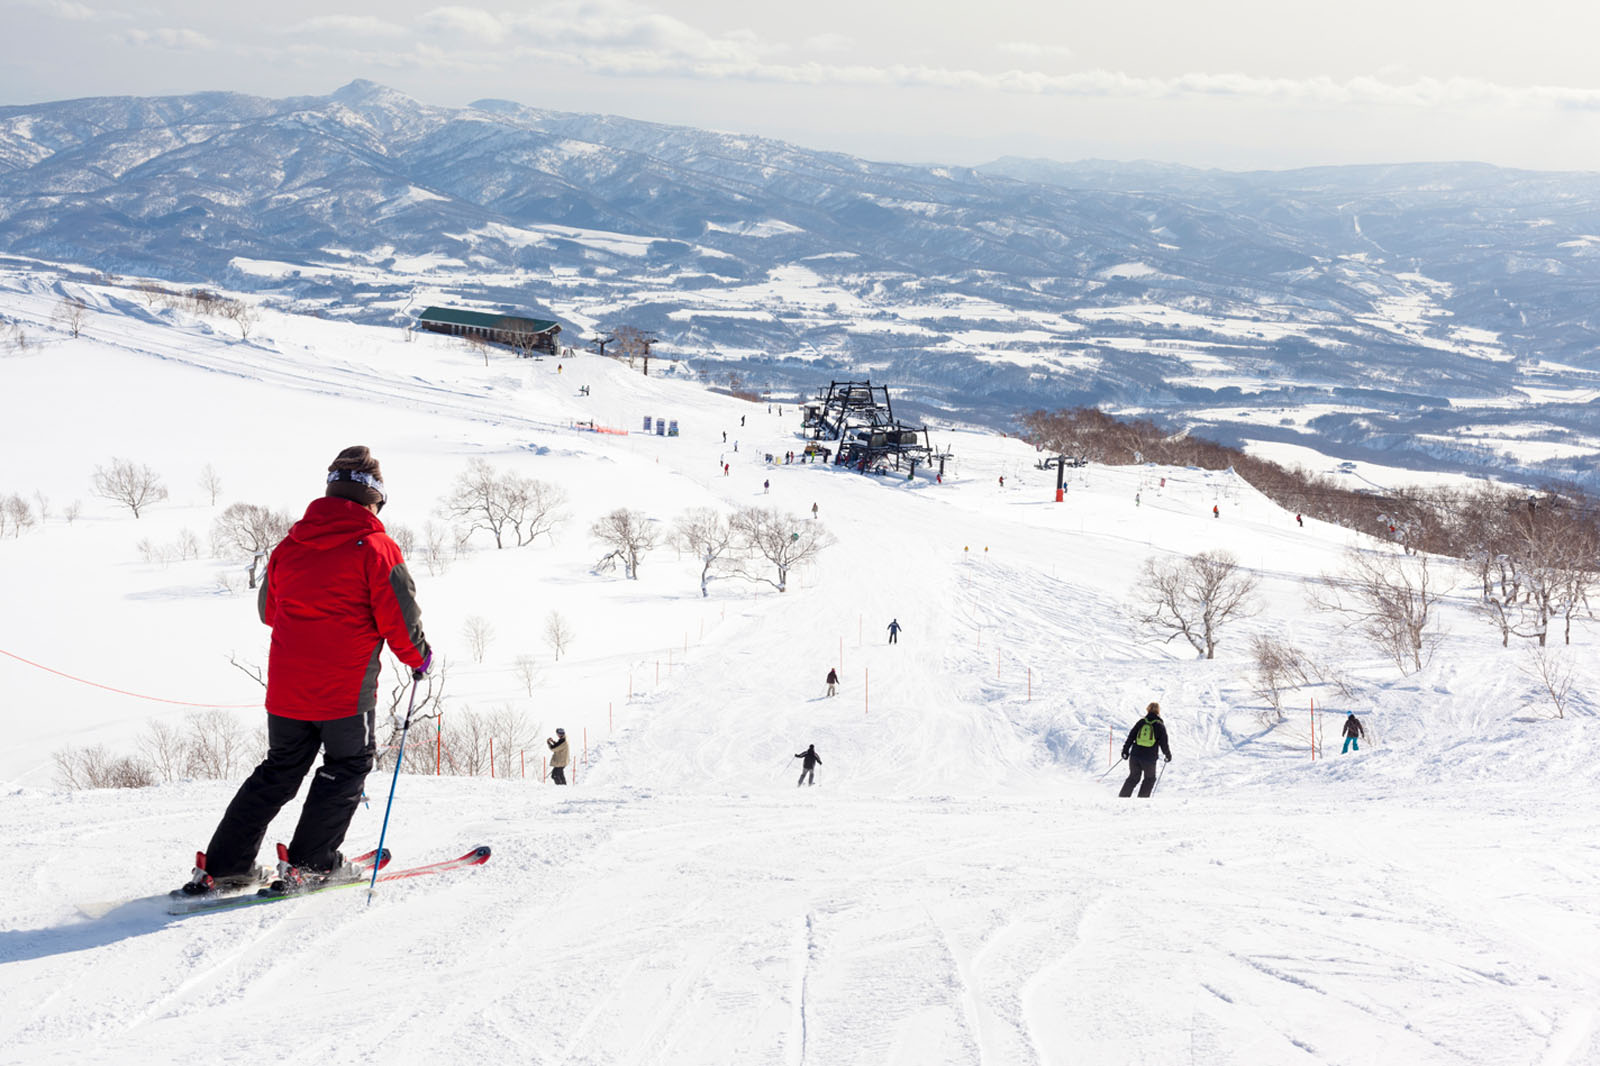 Ski slopes in Japan